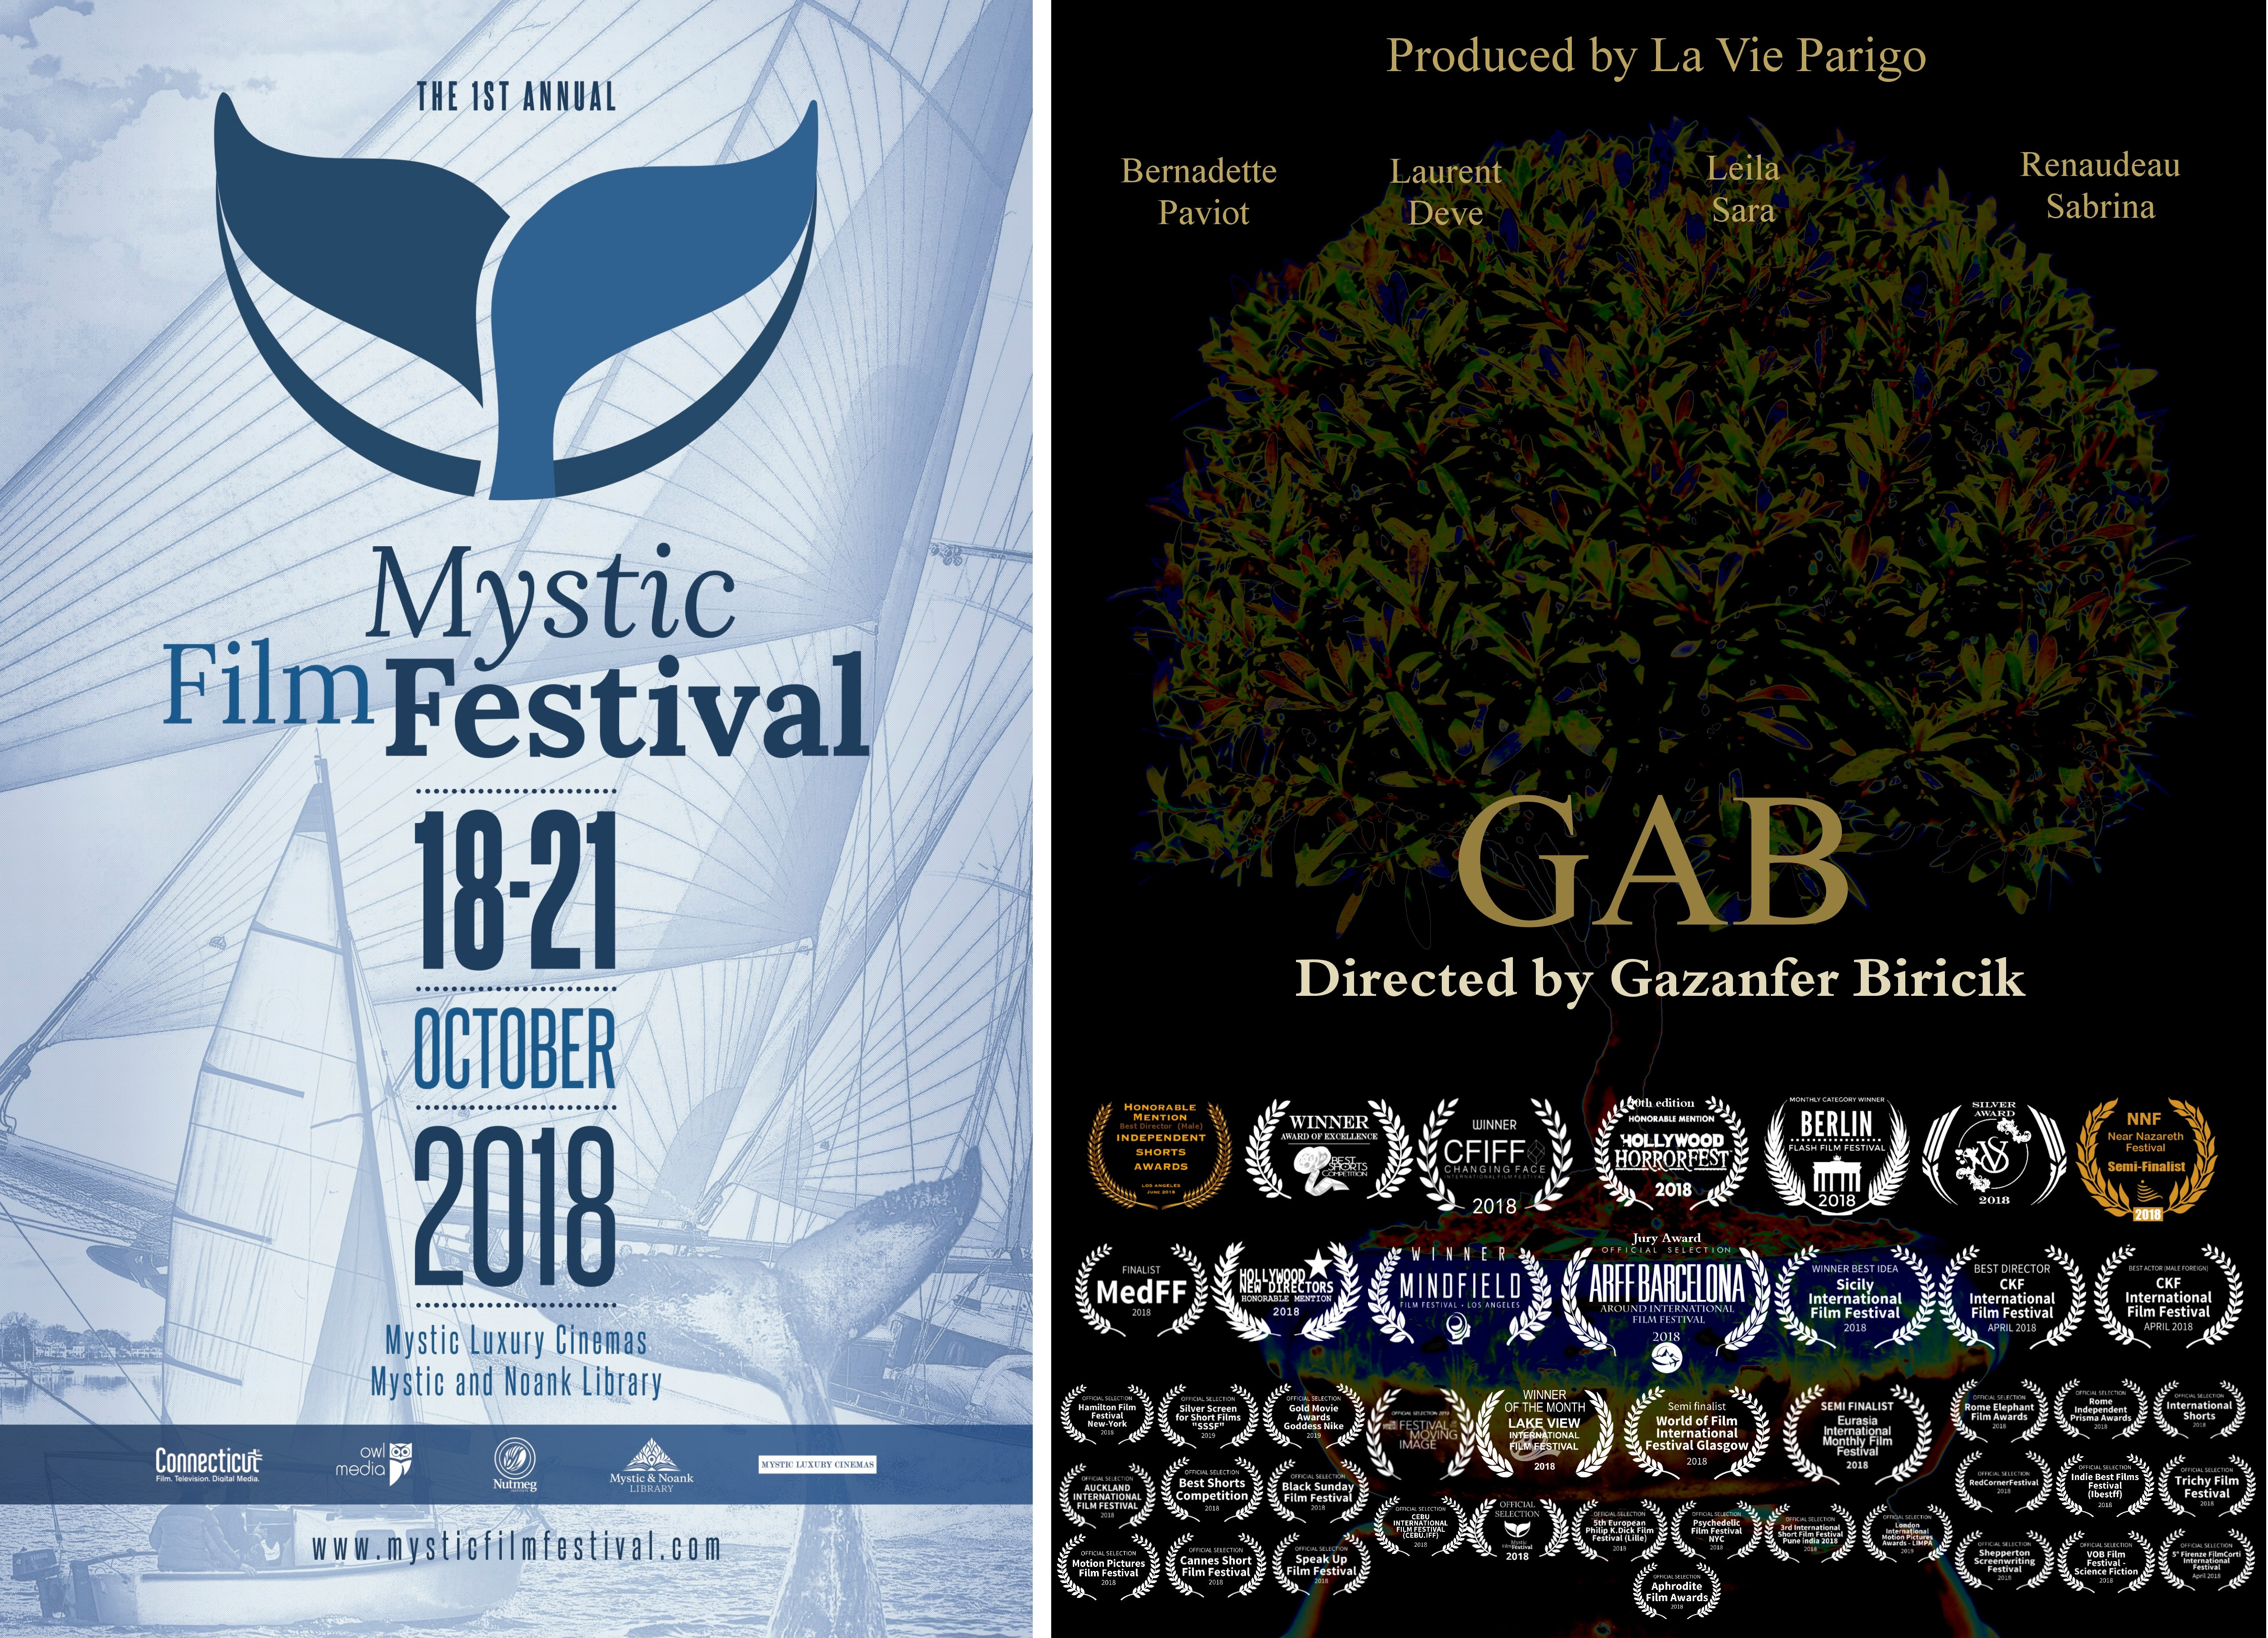 GAB selected to Mystic Film Festival